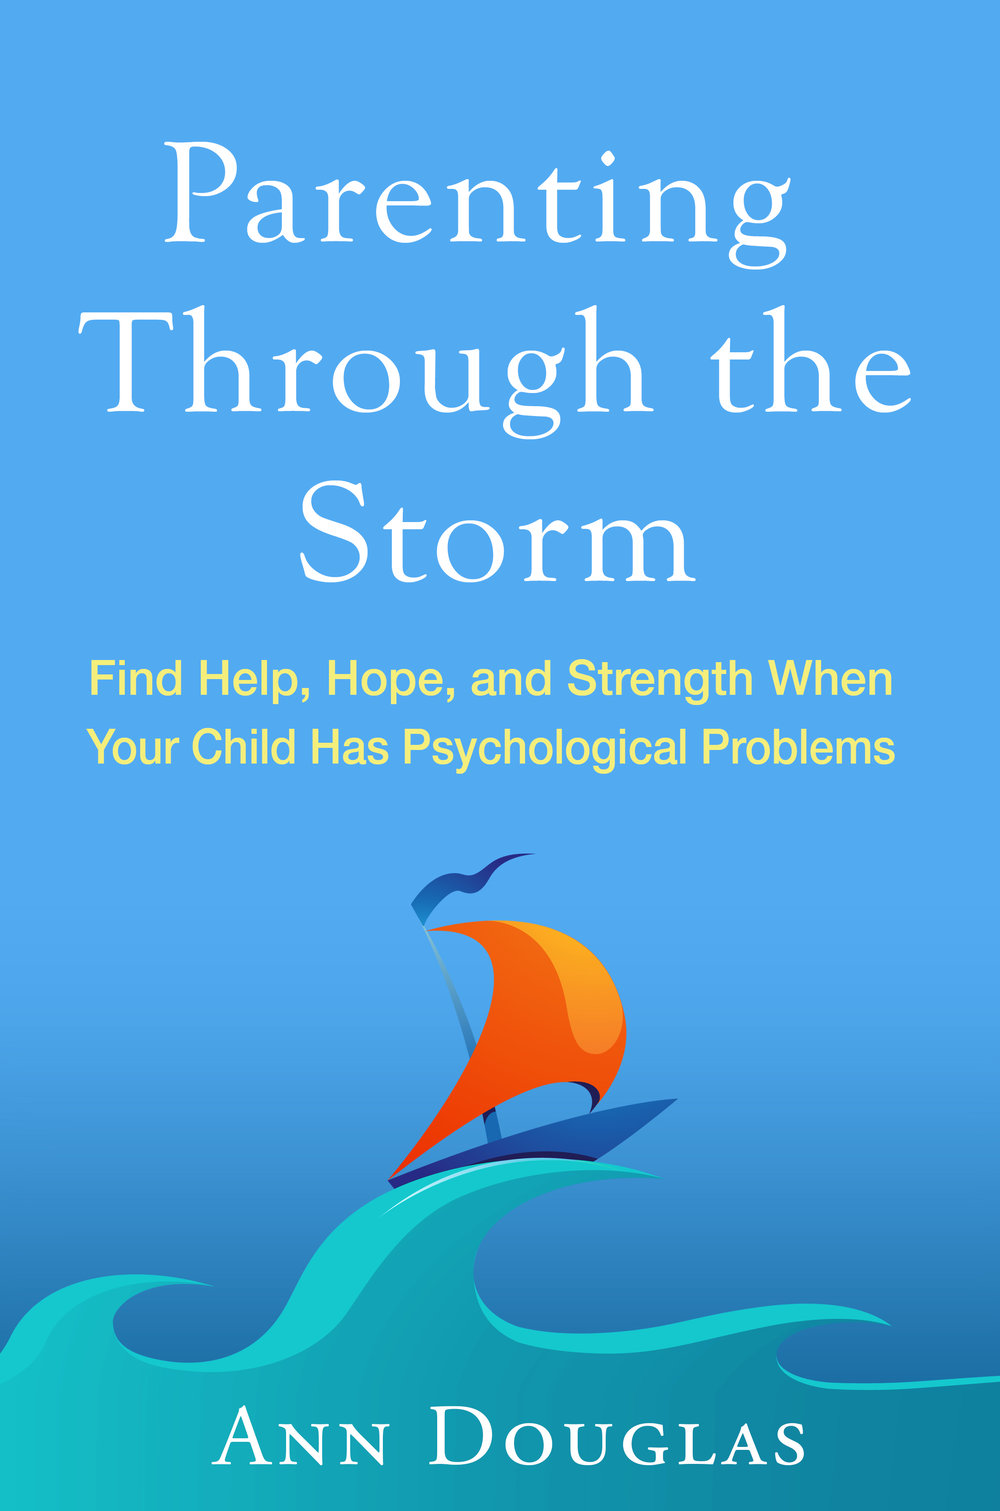 parenting-through-the-storm-us-international